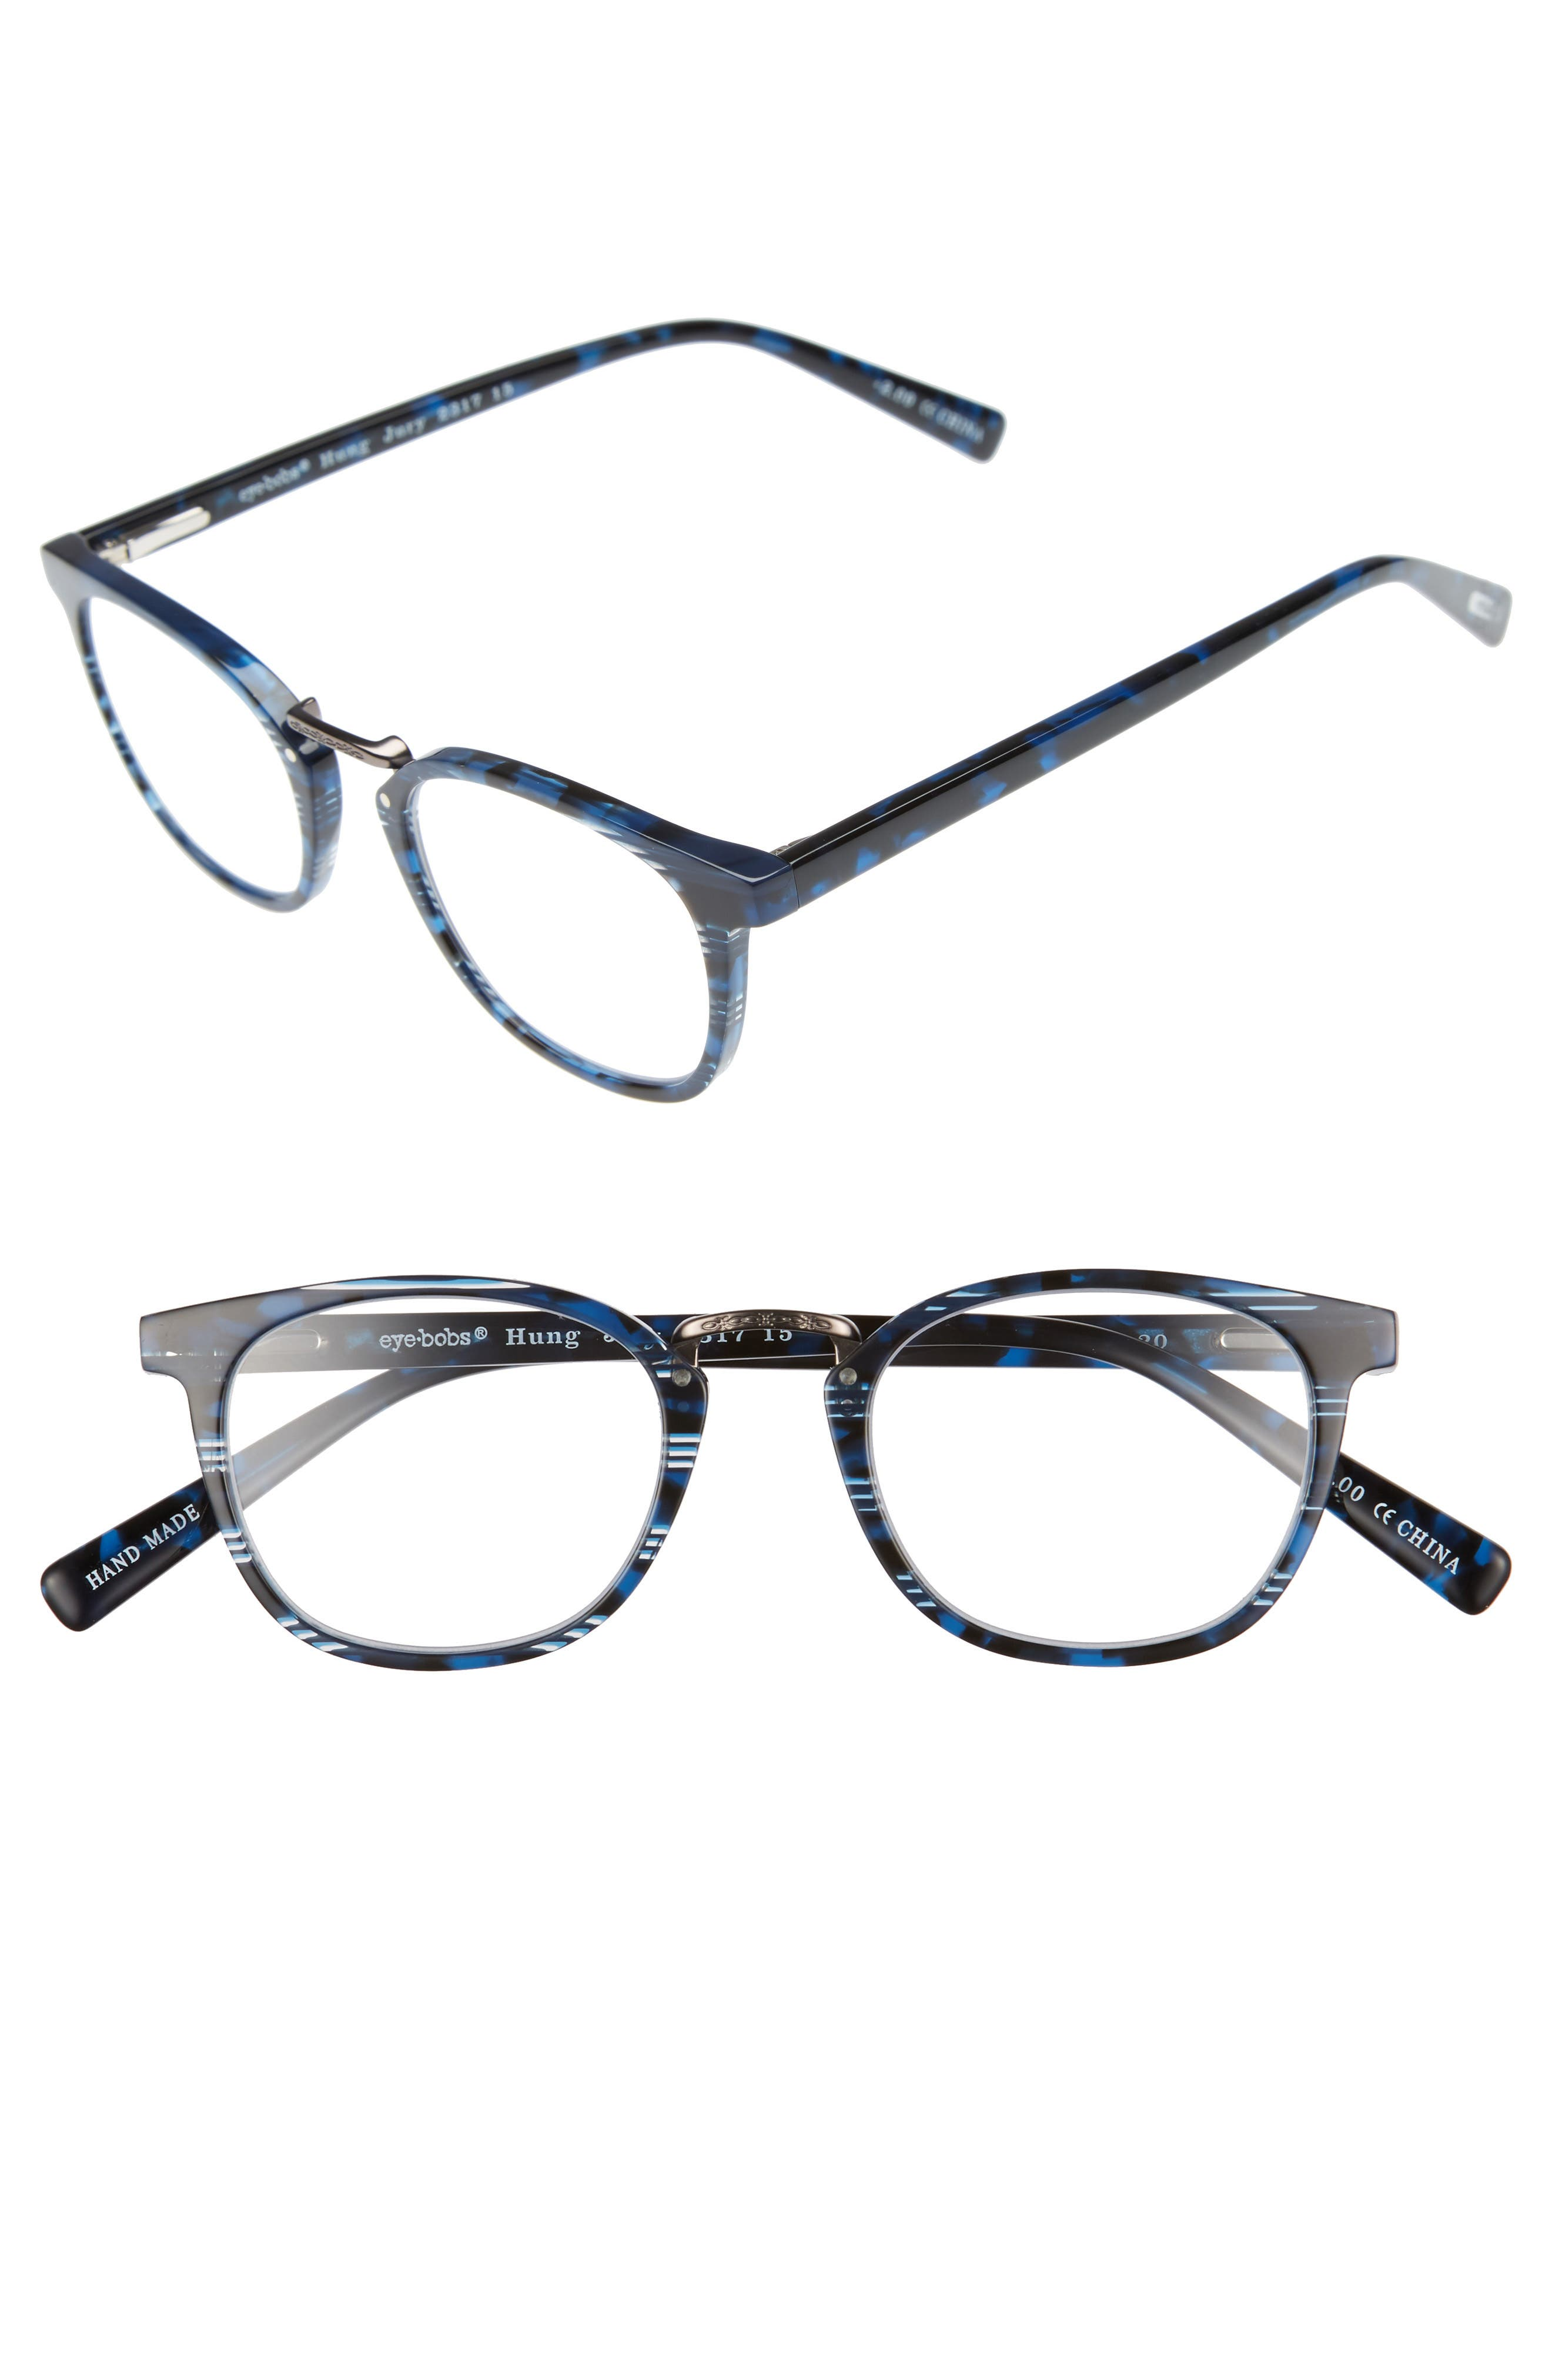 Main Image - Eyebob Hung Jury 46mm Reading Glasses